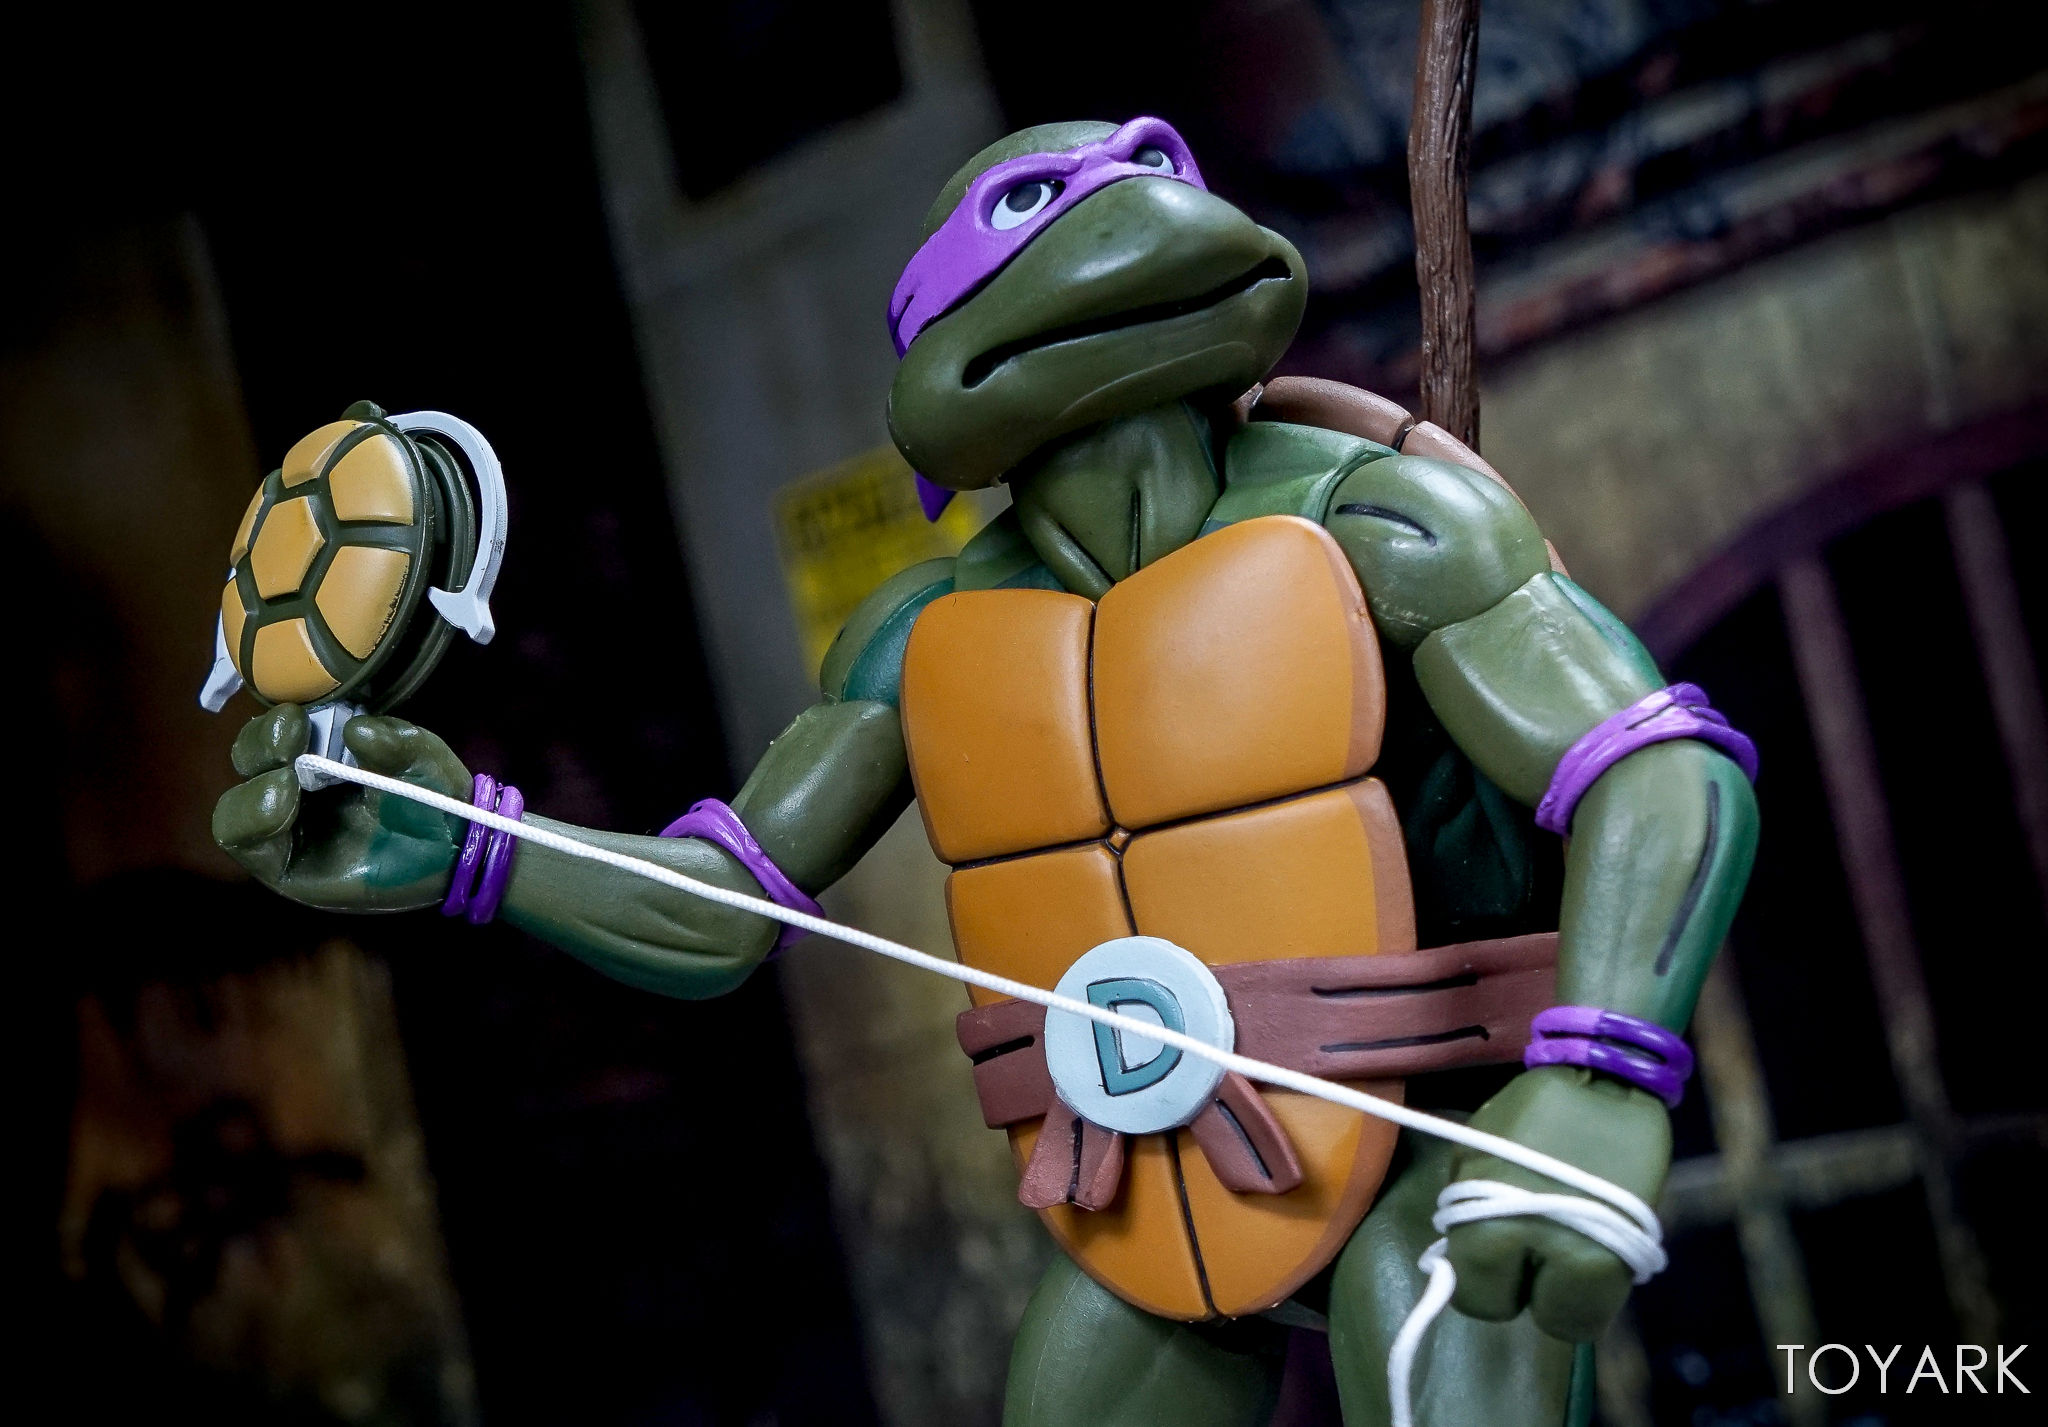 http://news.toyark.com/wp-content/uploads/sites/4/2017/07/NECA-SDCC-2017-Toon-TMNT-034.jpg